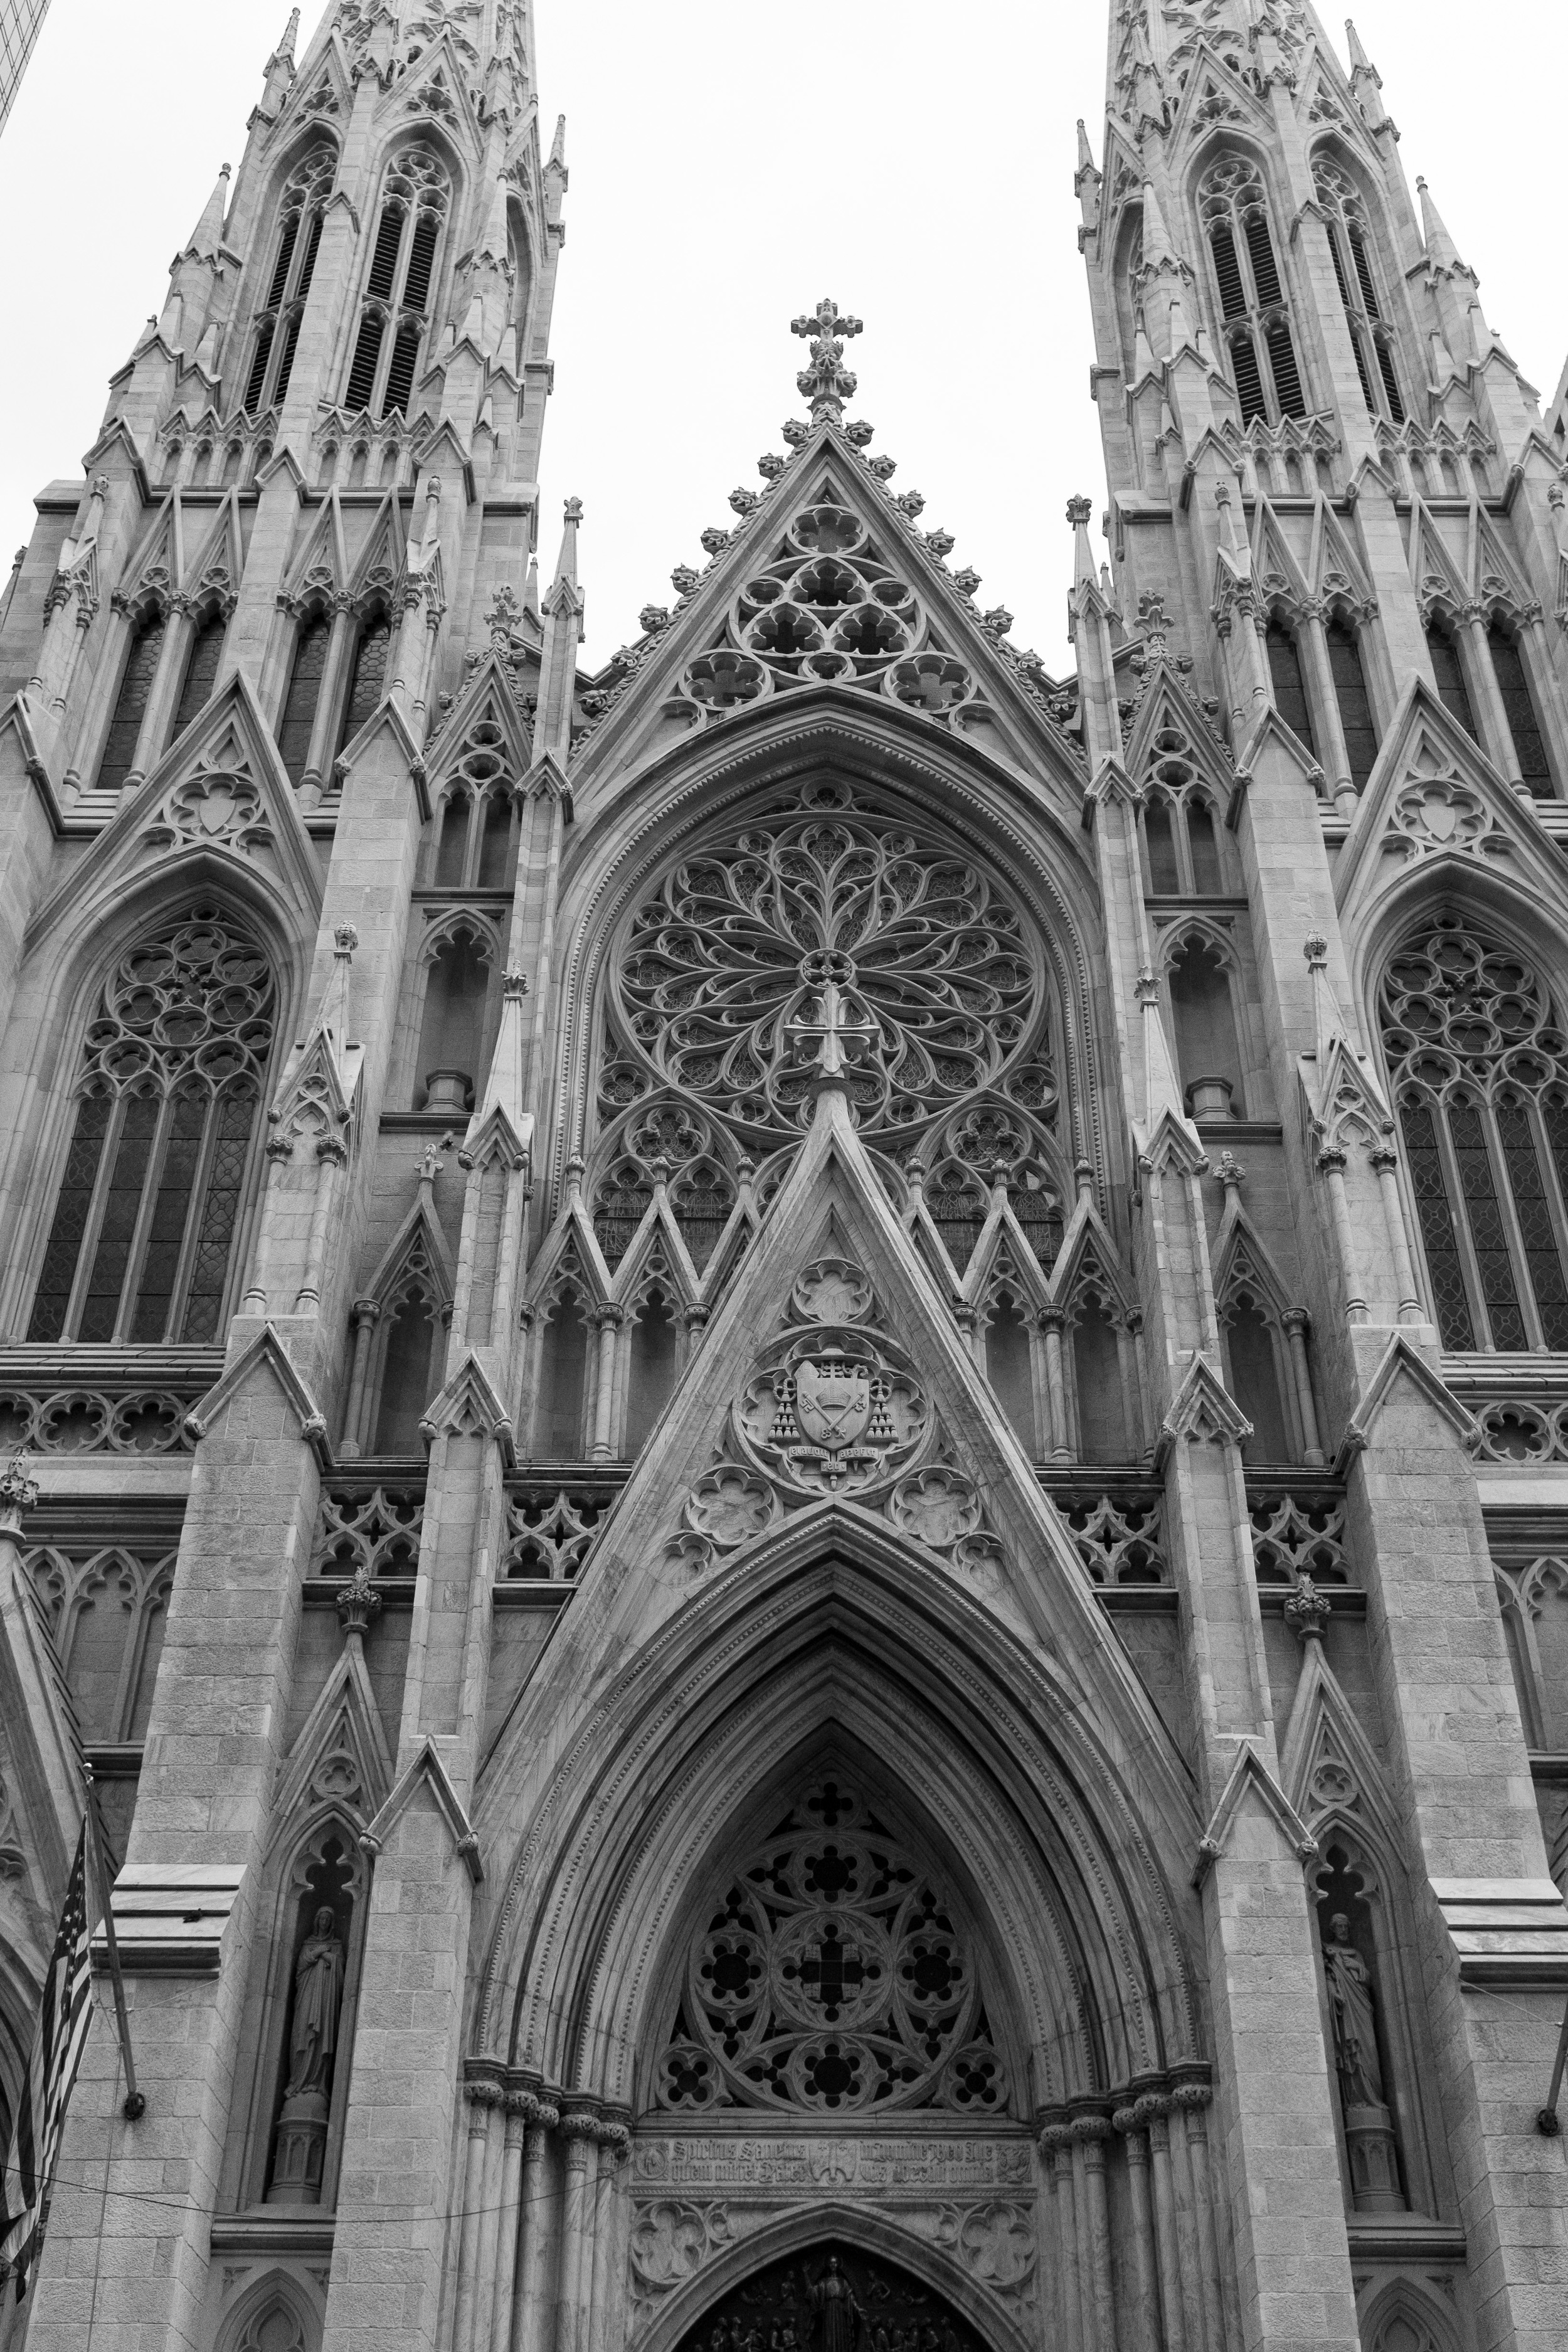 Saint Patrick's Cathedral in NYC